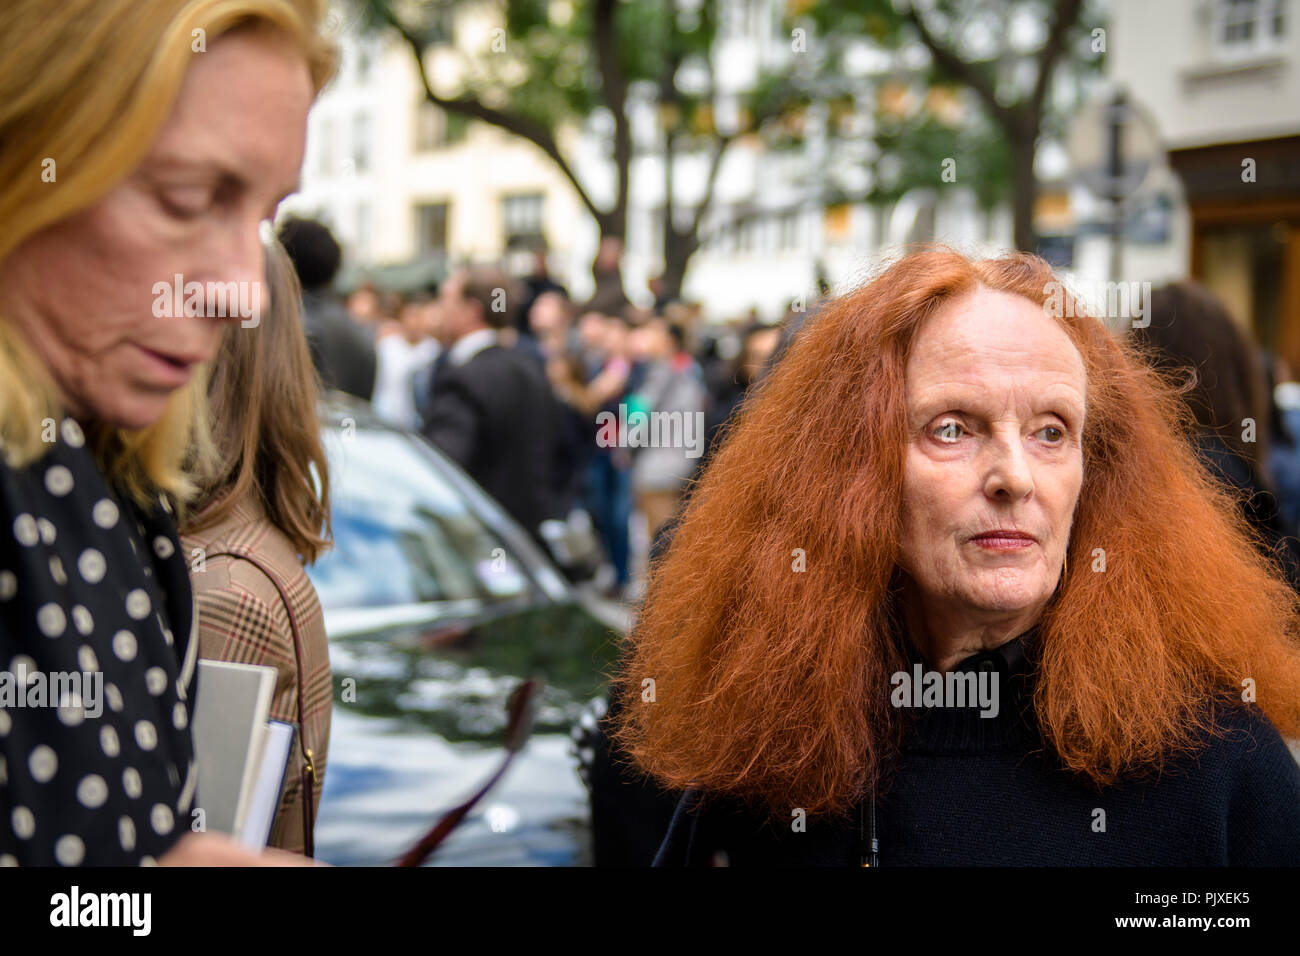 Former model and the creative director at large of American Vogue magazine Grace Coddington depasrts on Day Six for Paris Fashion Week Spring/Summer 2017 Collection shows on October 02, 2016, in Paris, France. - Stock Image